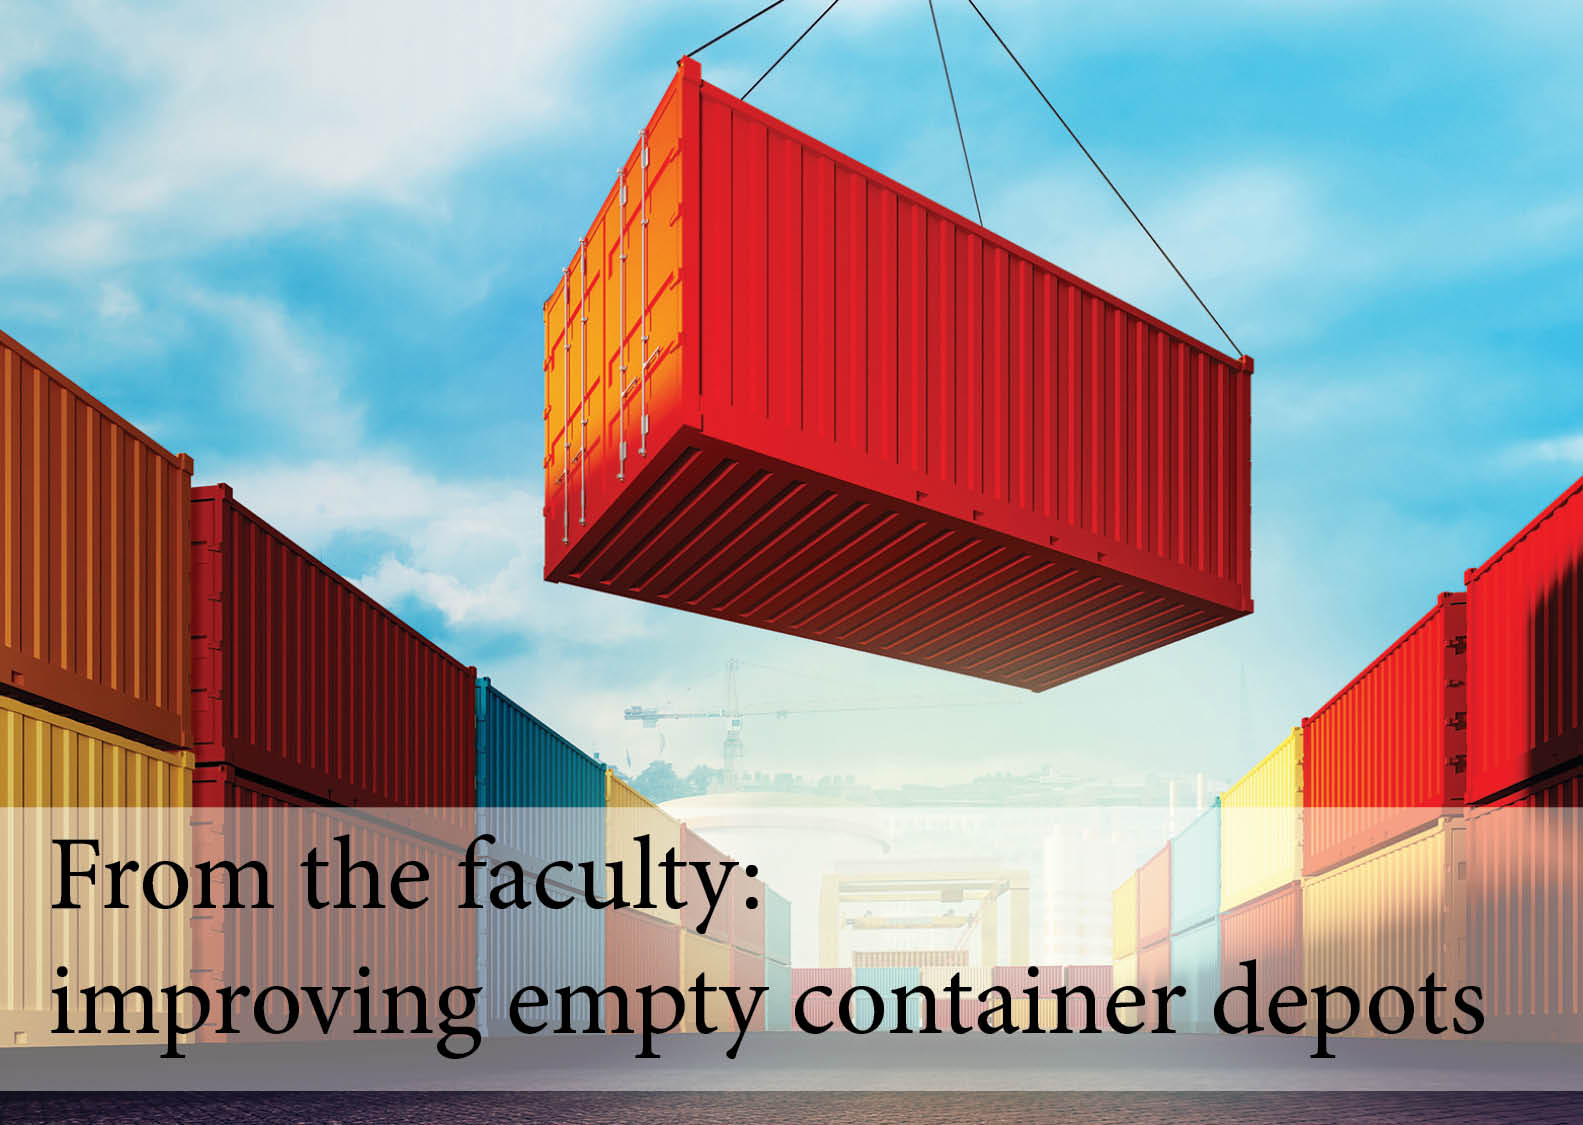 container-depots-image.jpg